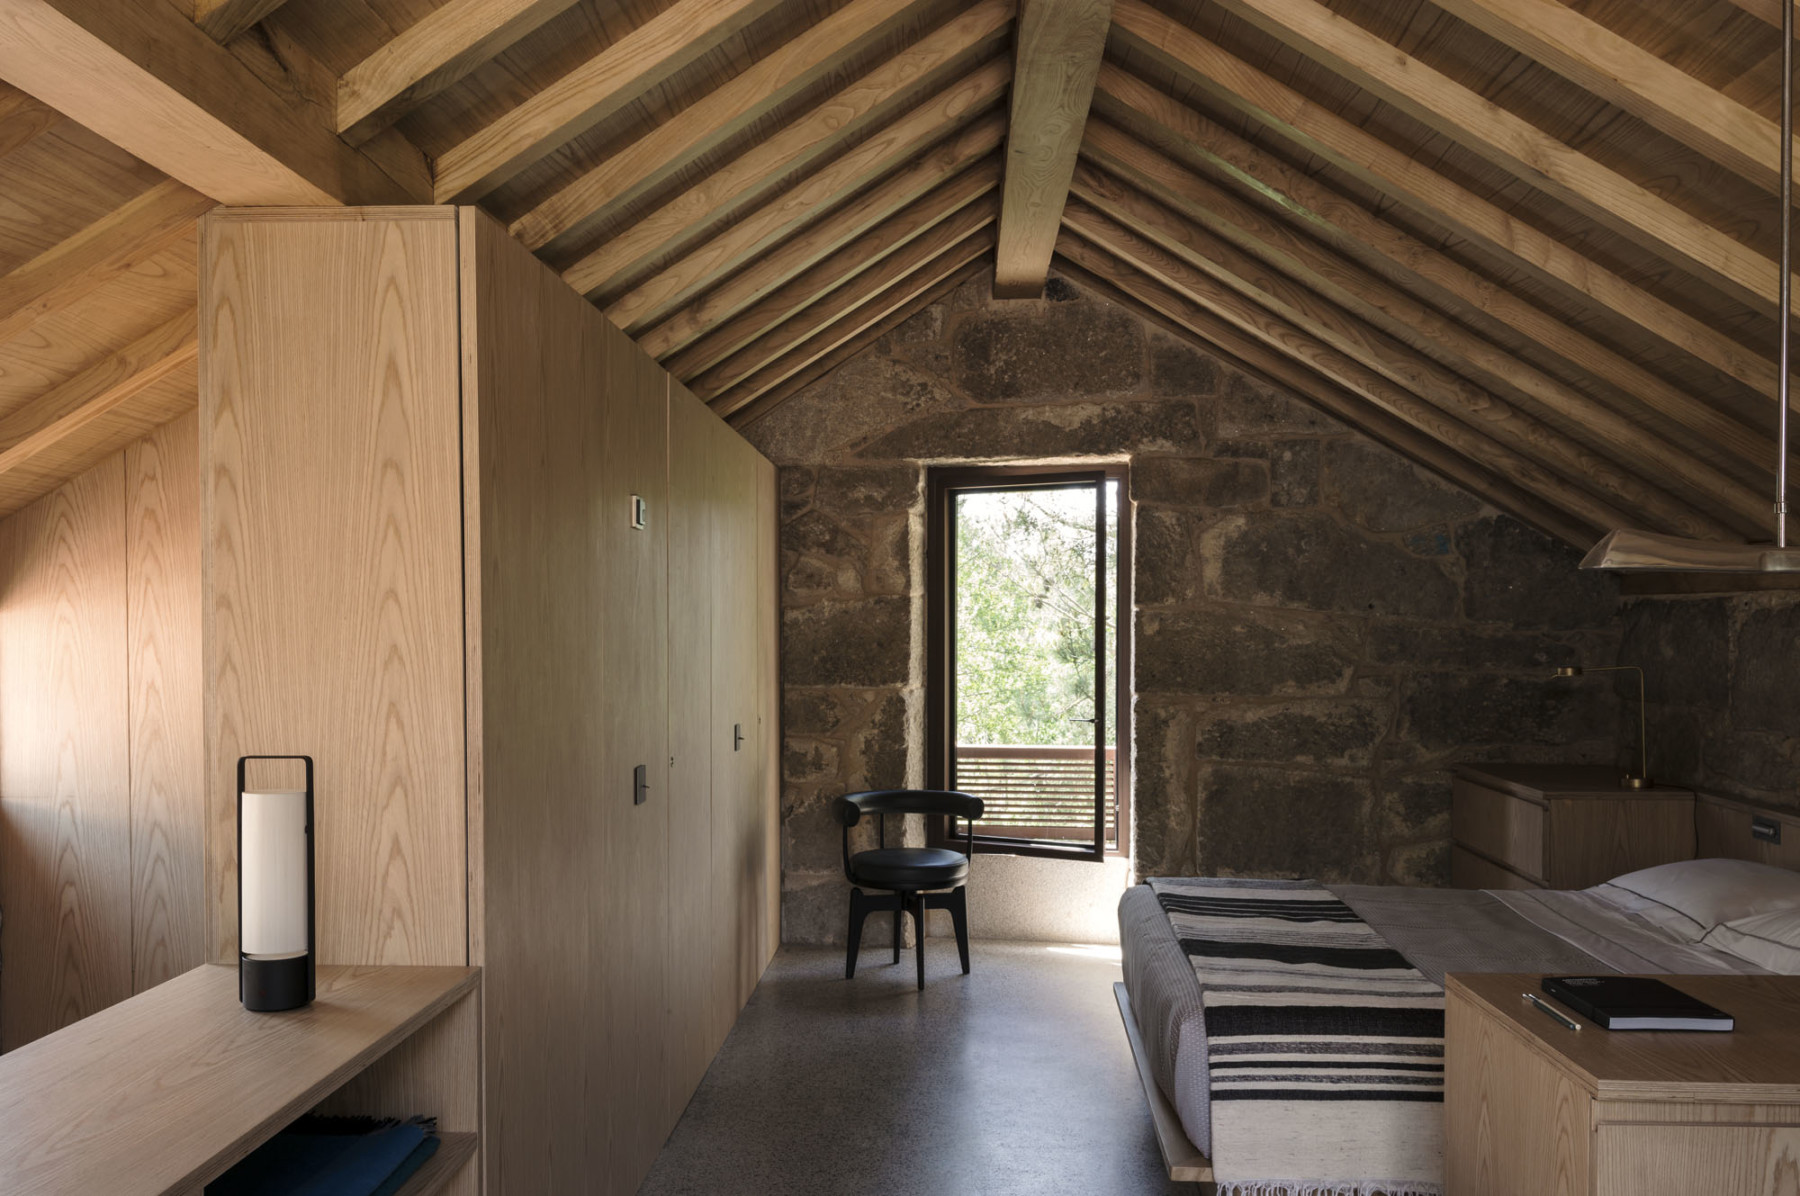 jamie-fobert-architects-camino-de-playa-galicia-Ciro-frank-schiappa5